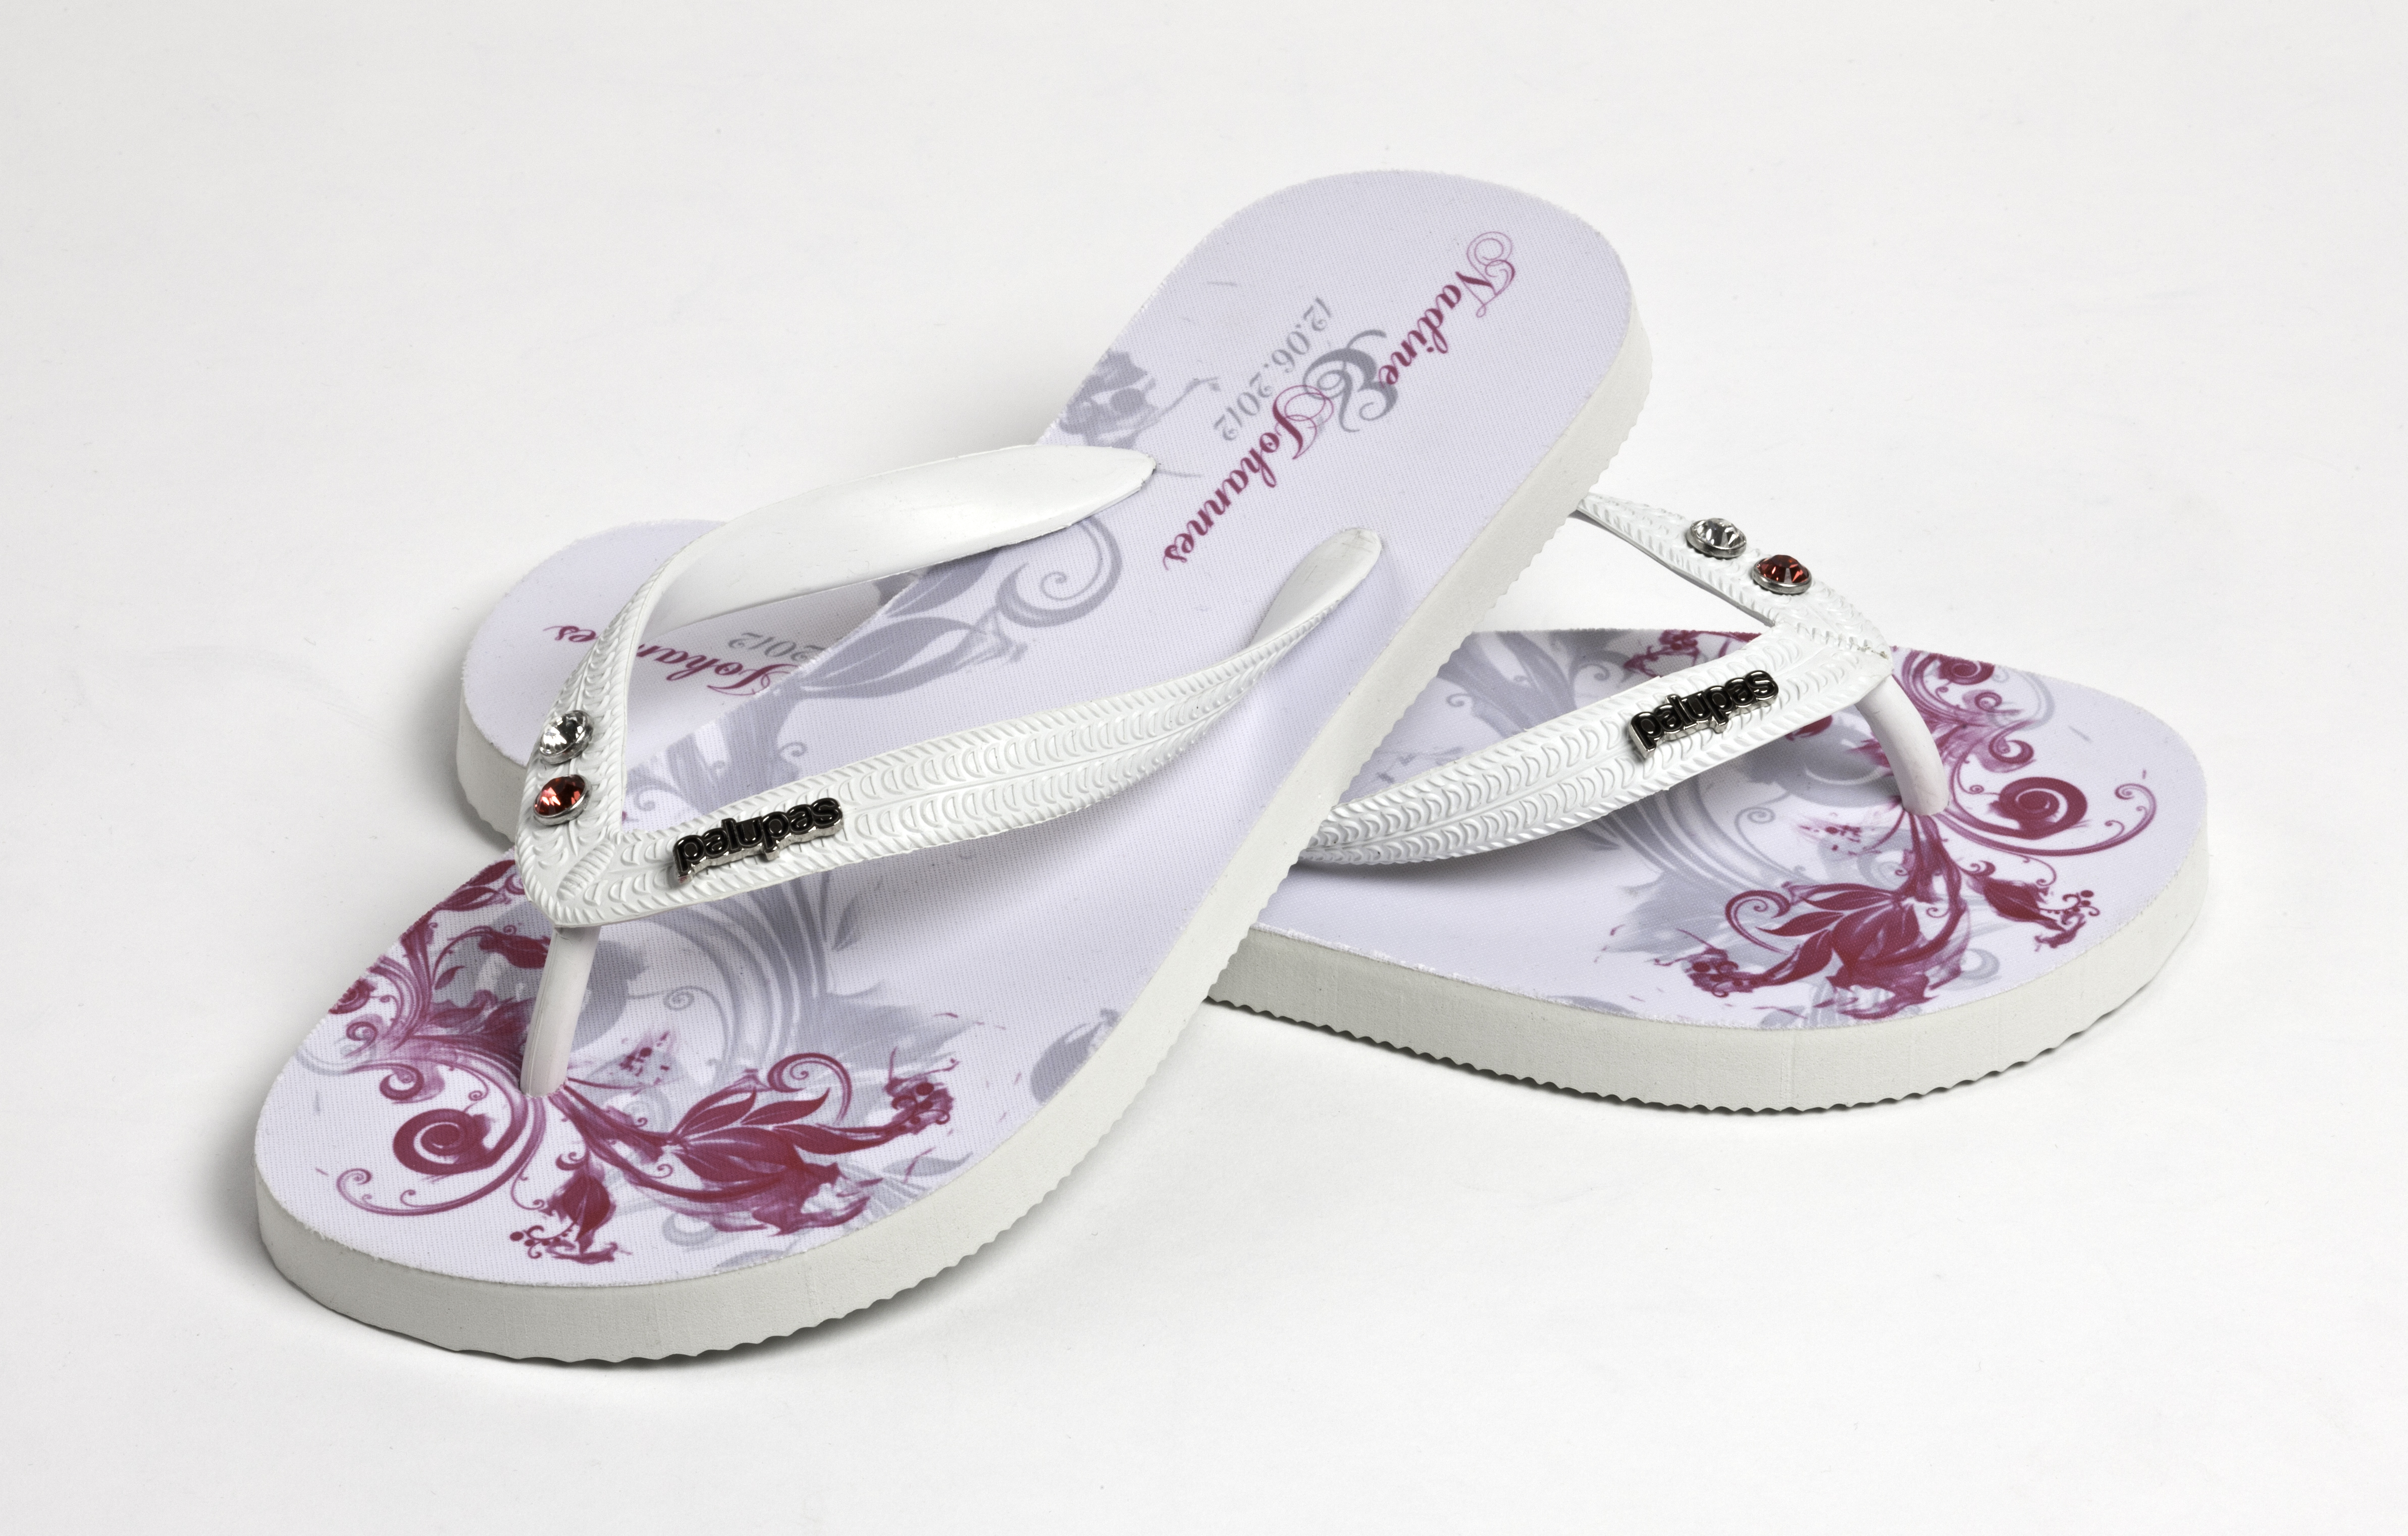 picture of graphic daisy just married flip flop sandals. Black Bedroom Furniture Sets. Home Design Ideas